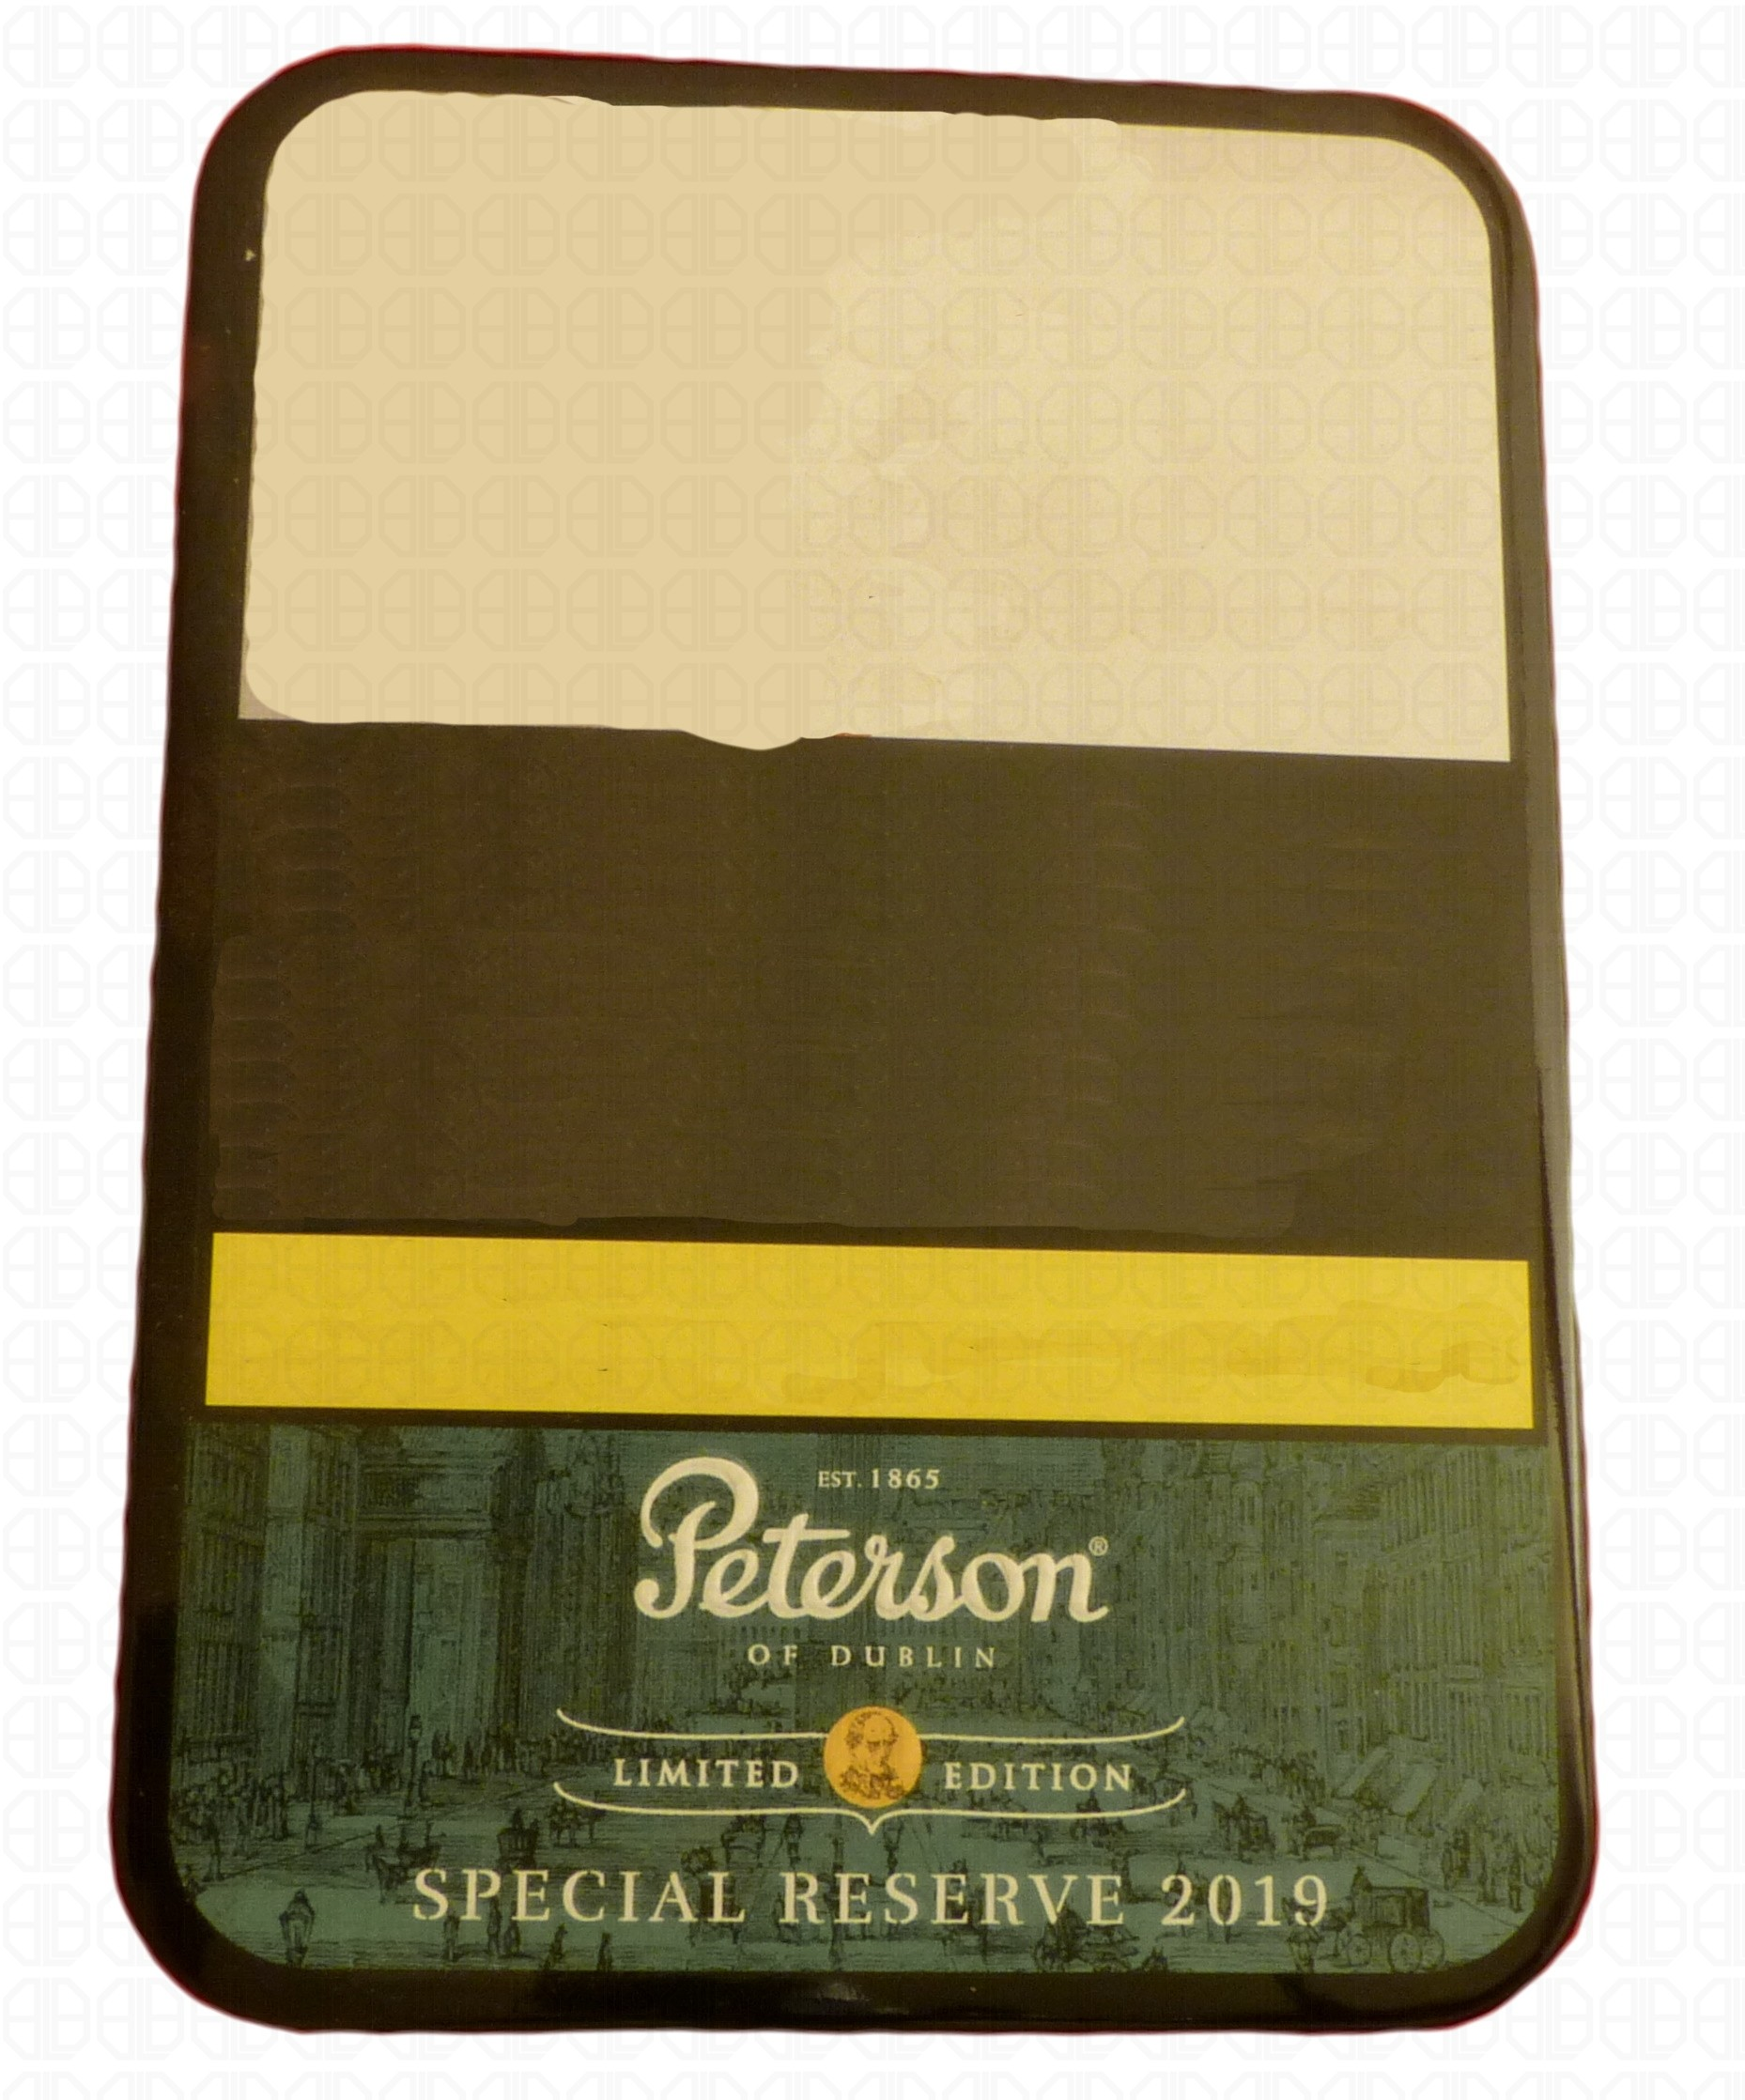 Peterson Special Reserve 2019 (100g)